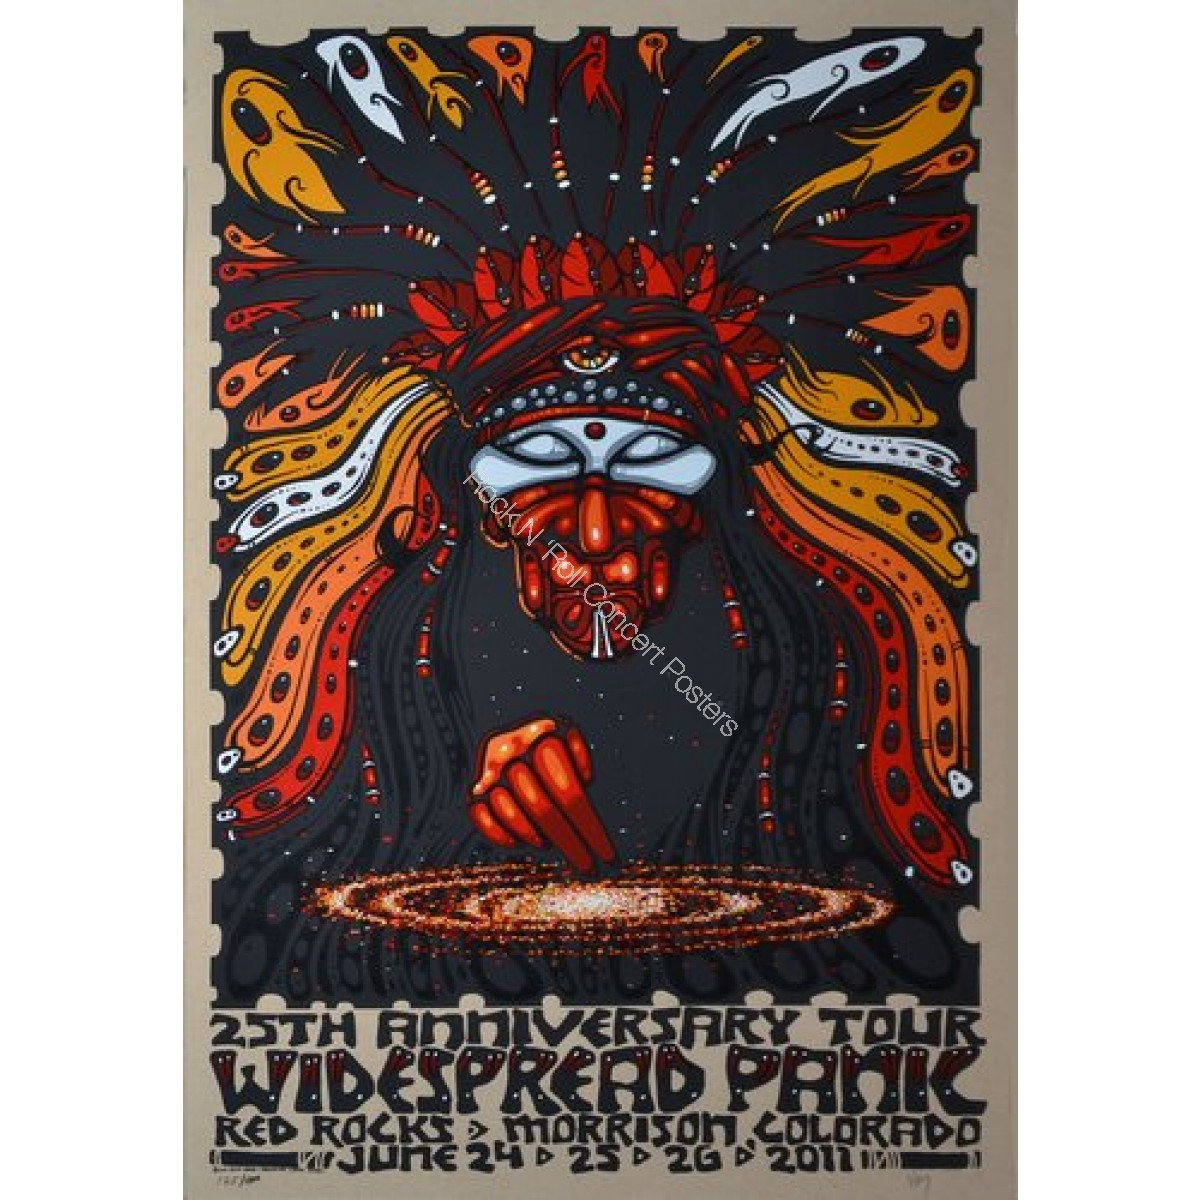 Widespread Panic @ Red Rocks Amphitheatre 6/24-26/11 Official screen print